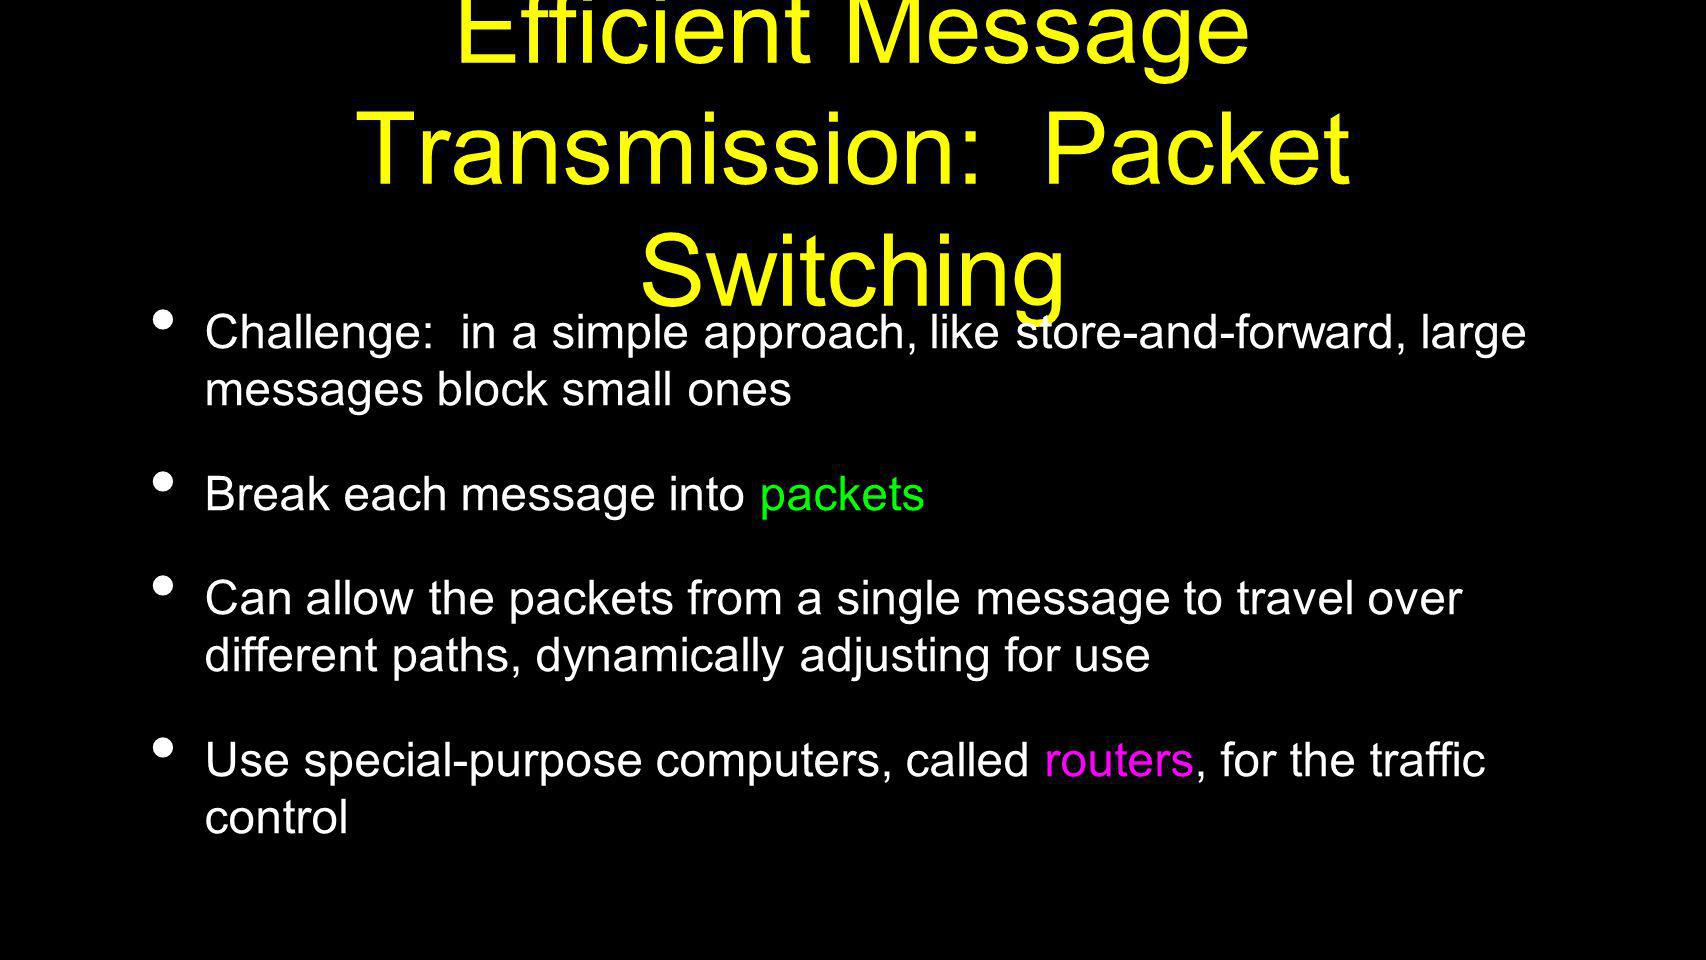 Efficient Message Transmission: Packet Switching